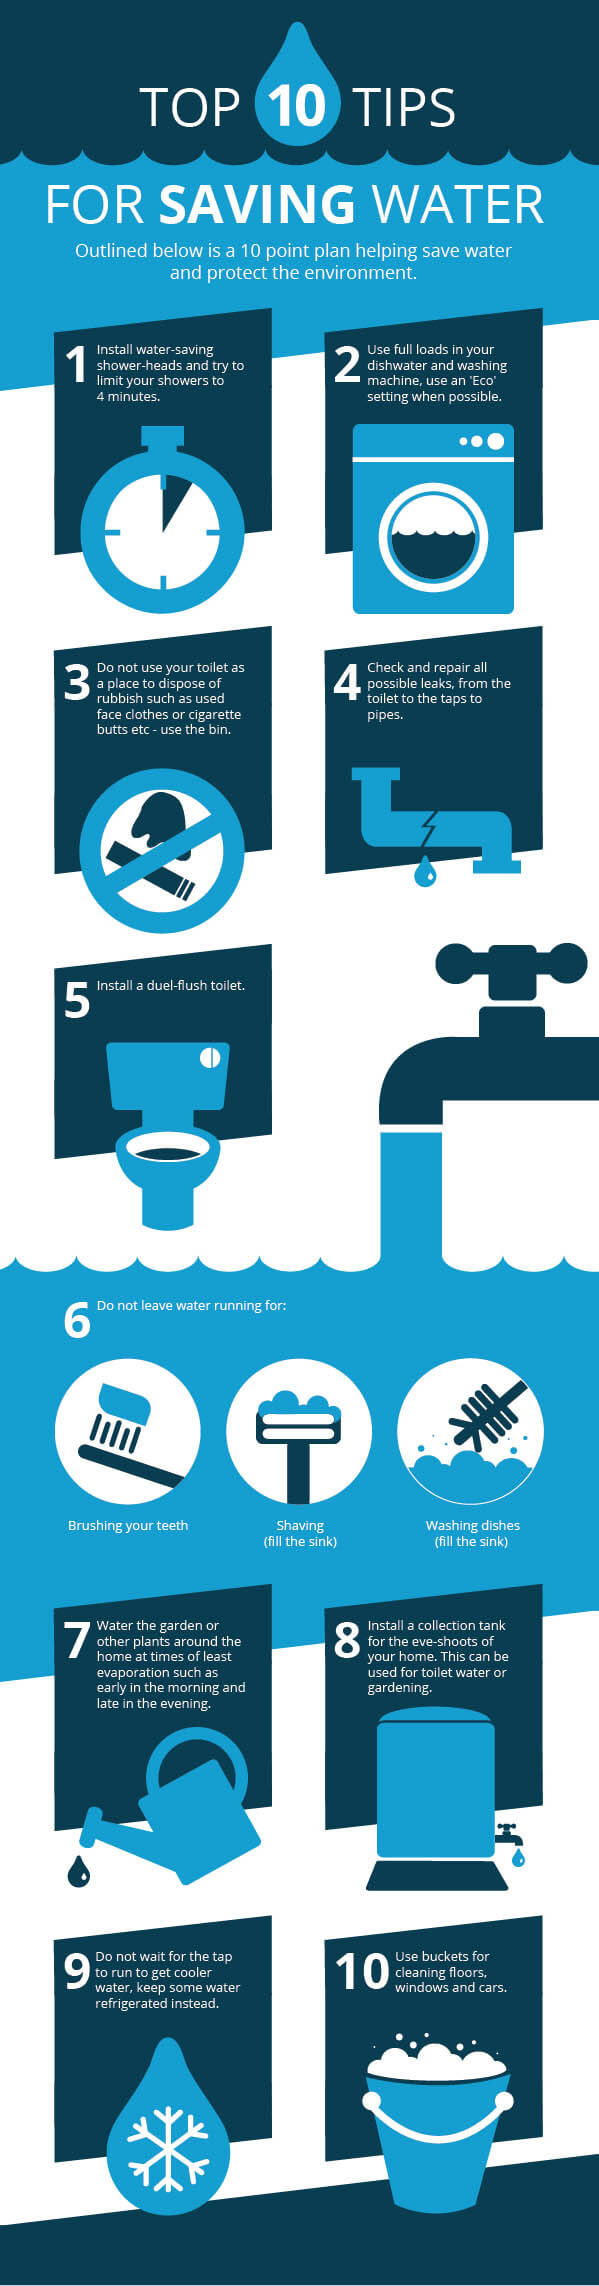 How to Save Water in the Bathroom - Simple Toilet